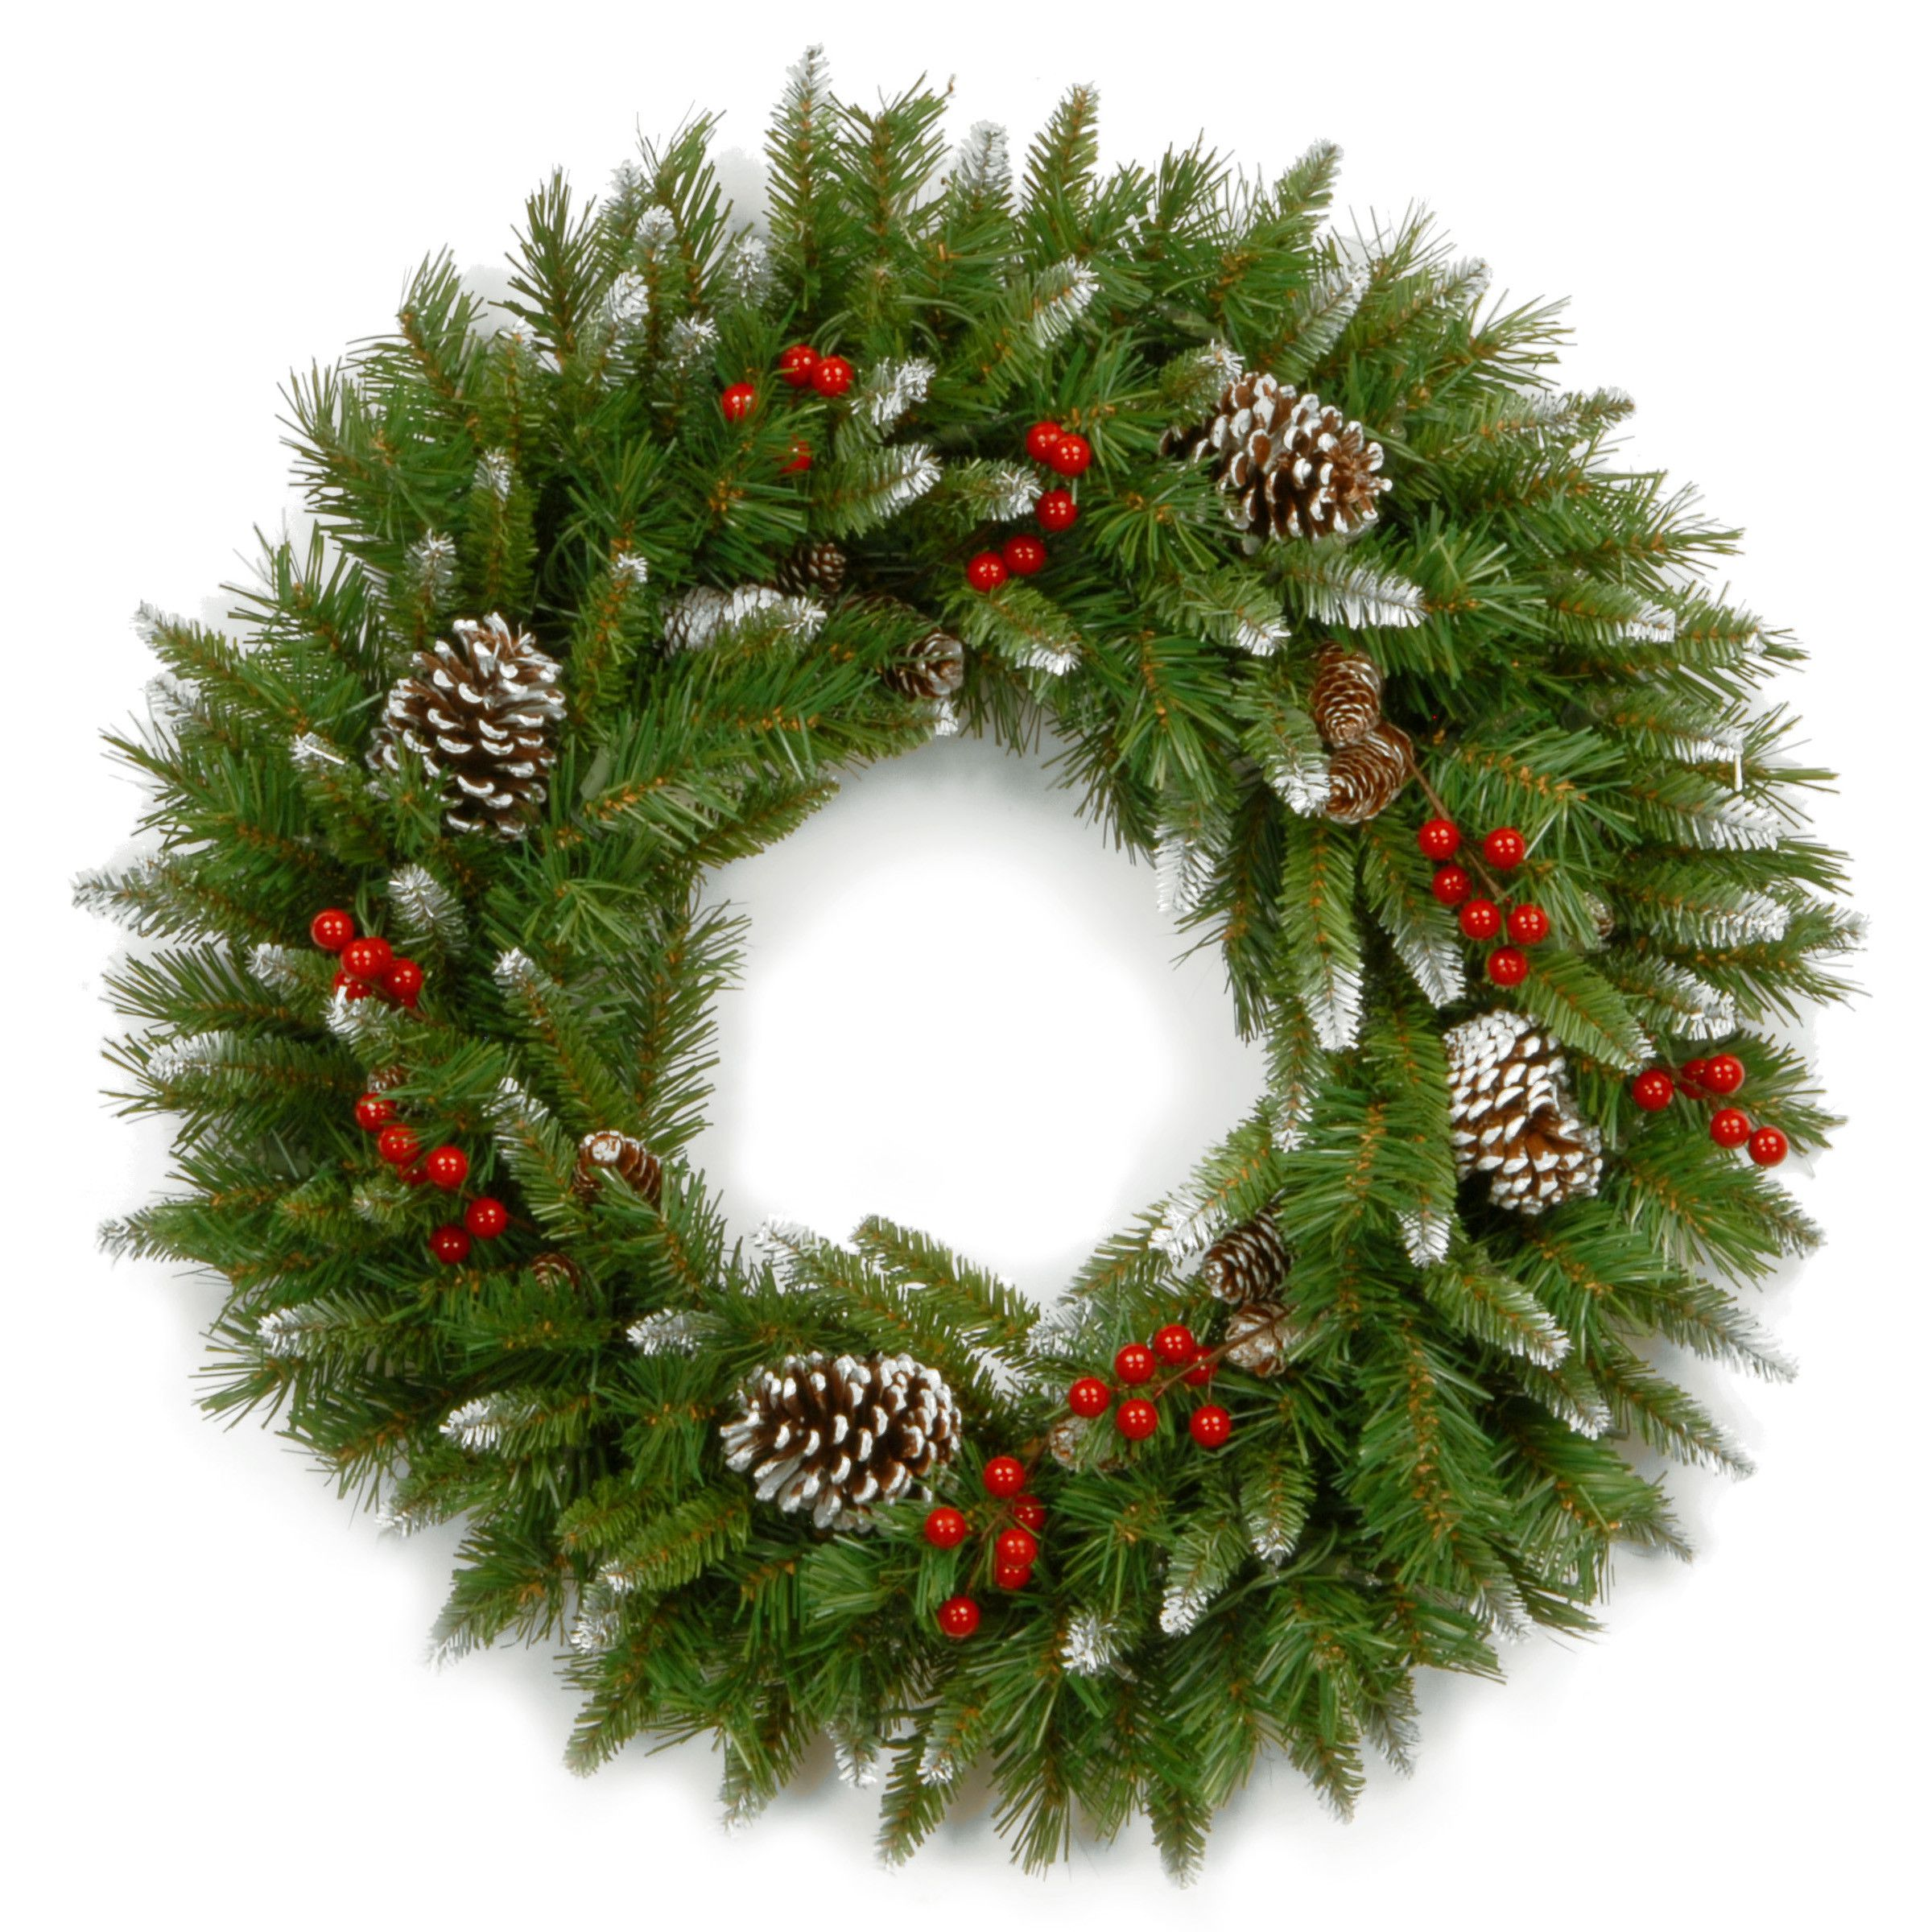 Christmas Wreath Making Workshop - Saturday December 8th 2018